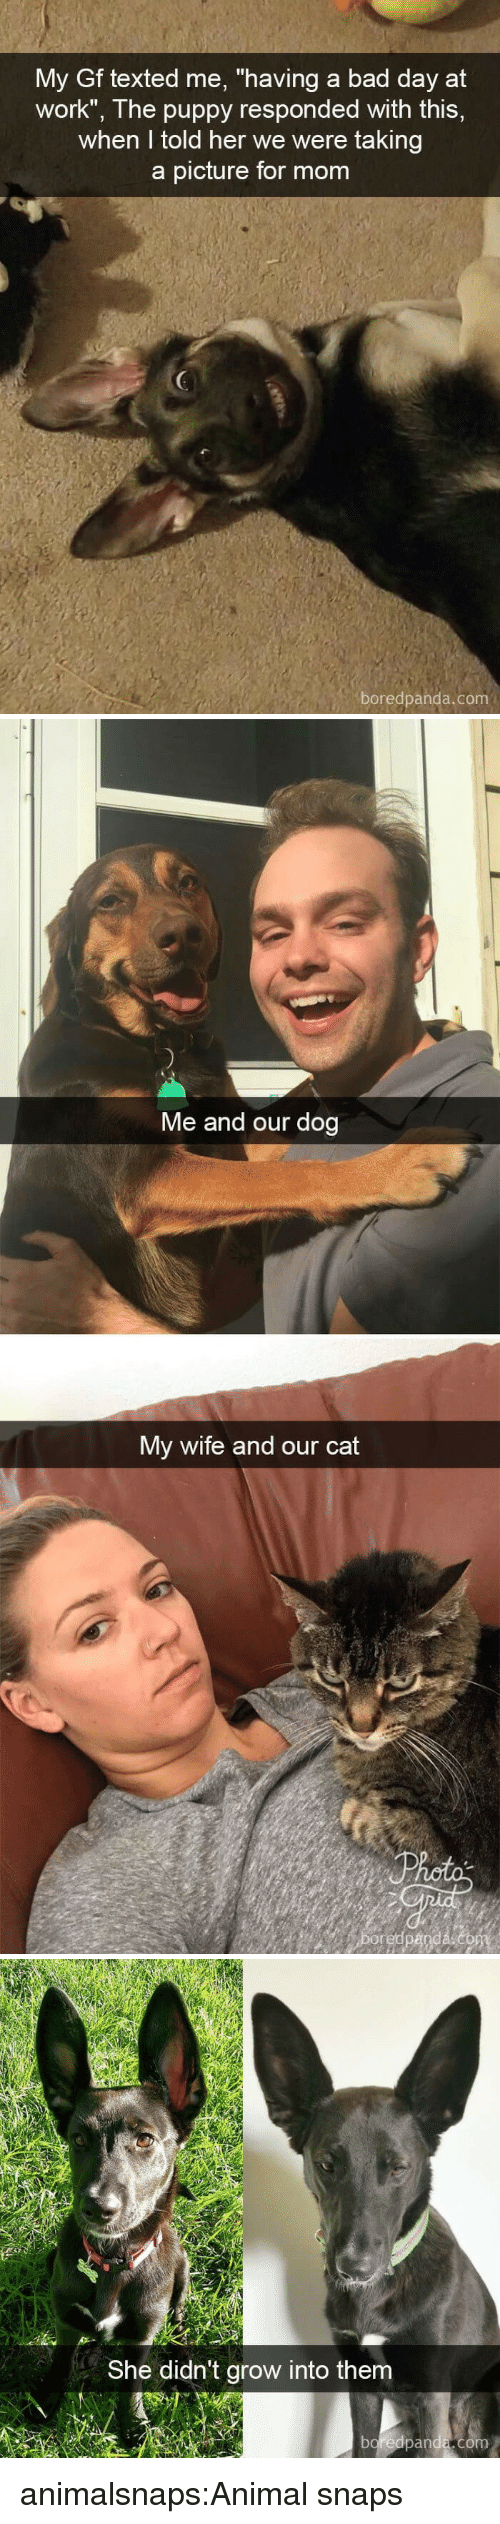 """Bad, Bad Day, and Target: My Gf texted me, """"having a bad day at  work"""", The puppy responded with this,  when I told her we were taking  a picture for mom  boredpanda.com   Me and our dog  My wife and our cat   She didn't grow into them  boreapanda,com animalsnaps:Animal snaps"""